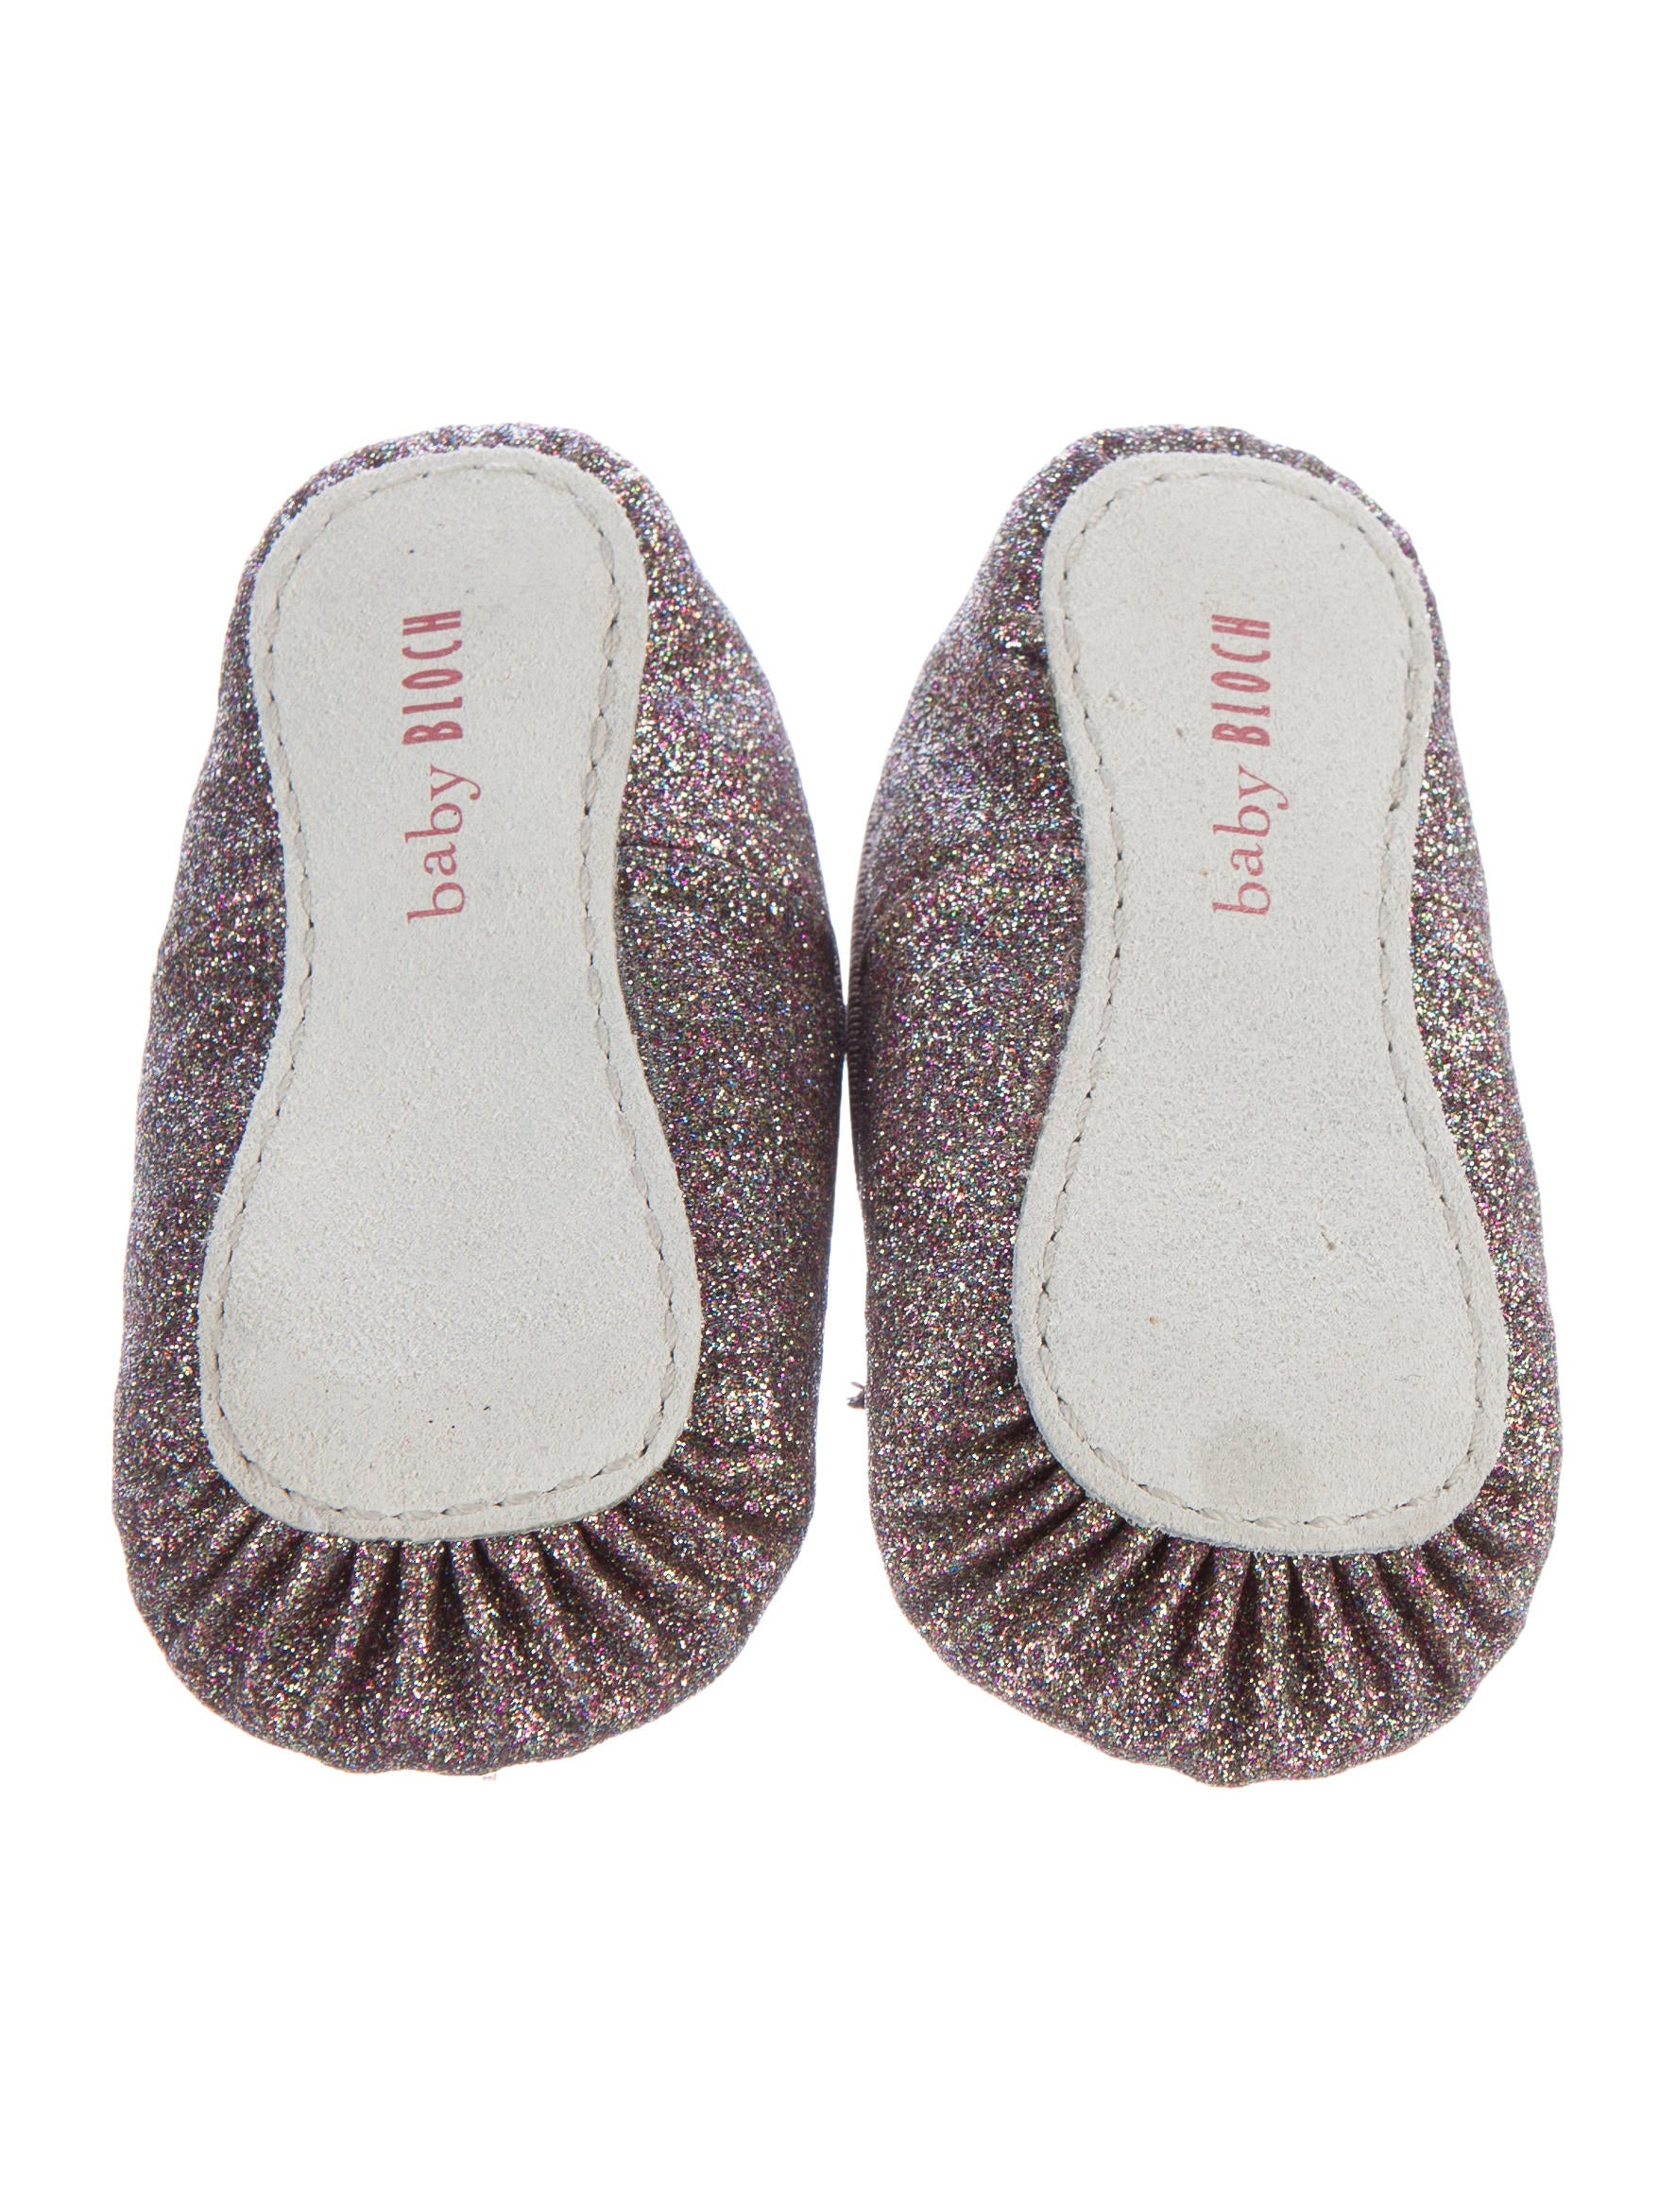 Find the perfect ballet shoes and slippers. Choose from canvas and leather styles in full sole and split-sole styles at great prices plus free shipping offer! Ballet Slippers. Filter & Sort (15 products) Ballet Slippers. 1 - leather upper that's covered with glitter. Reinforced stitching provides additional arch .